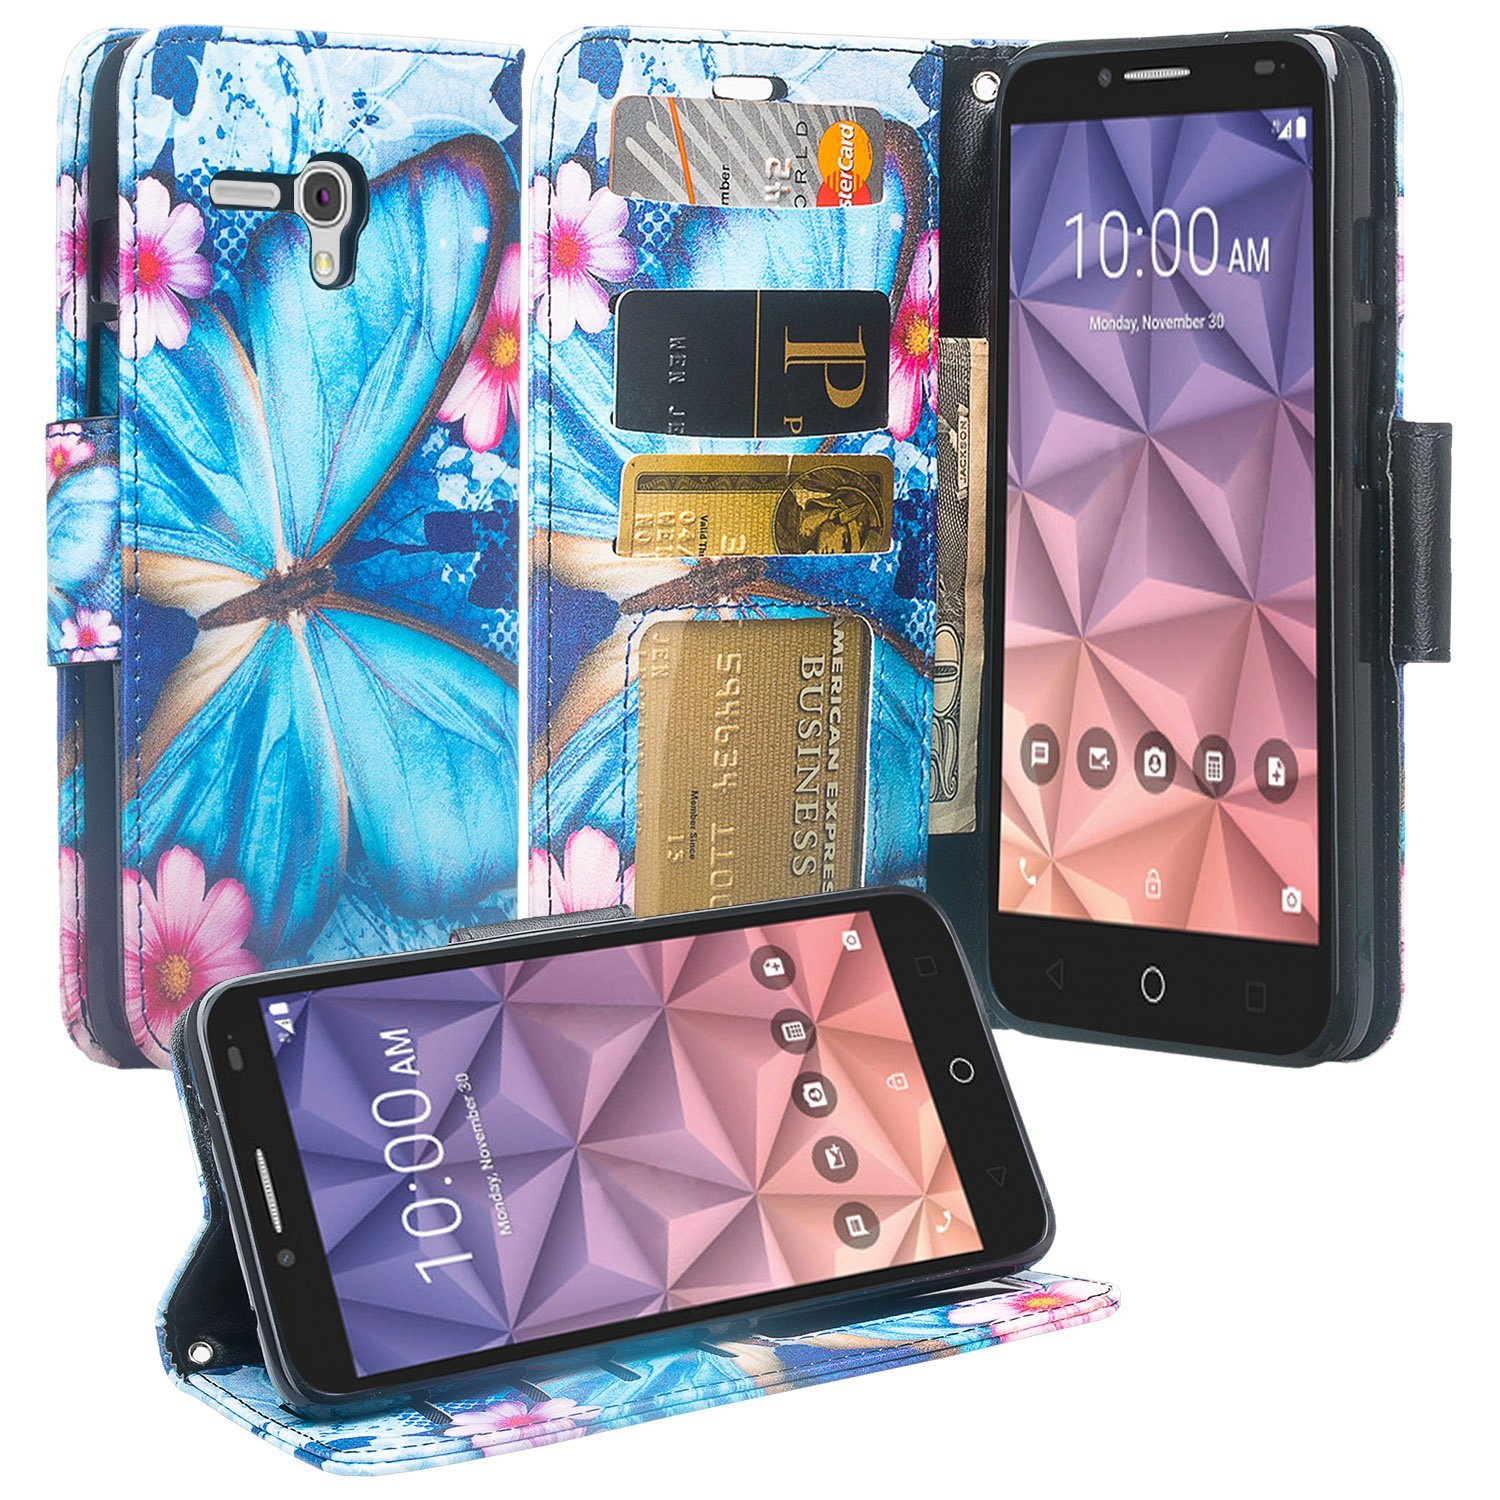 Jitterbug Smart Case, Pixi Glory, Fierce XL, PU Leather Wallet Protective Case Cover with Card Slots and Stand - Blue Butterfly